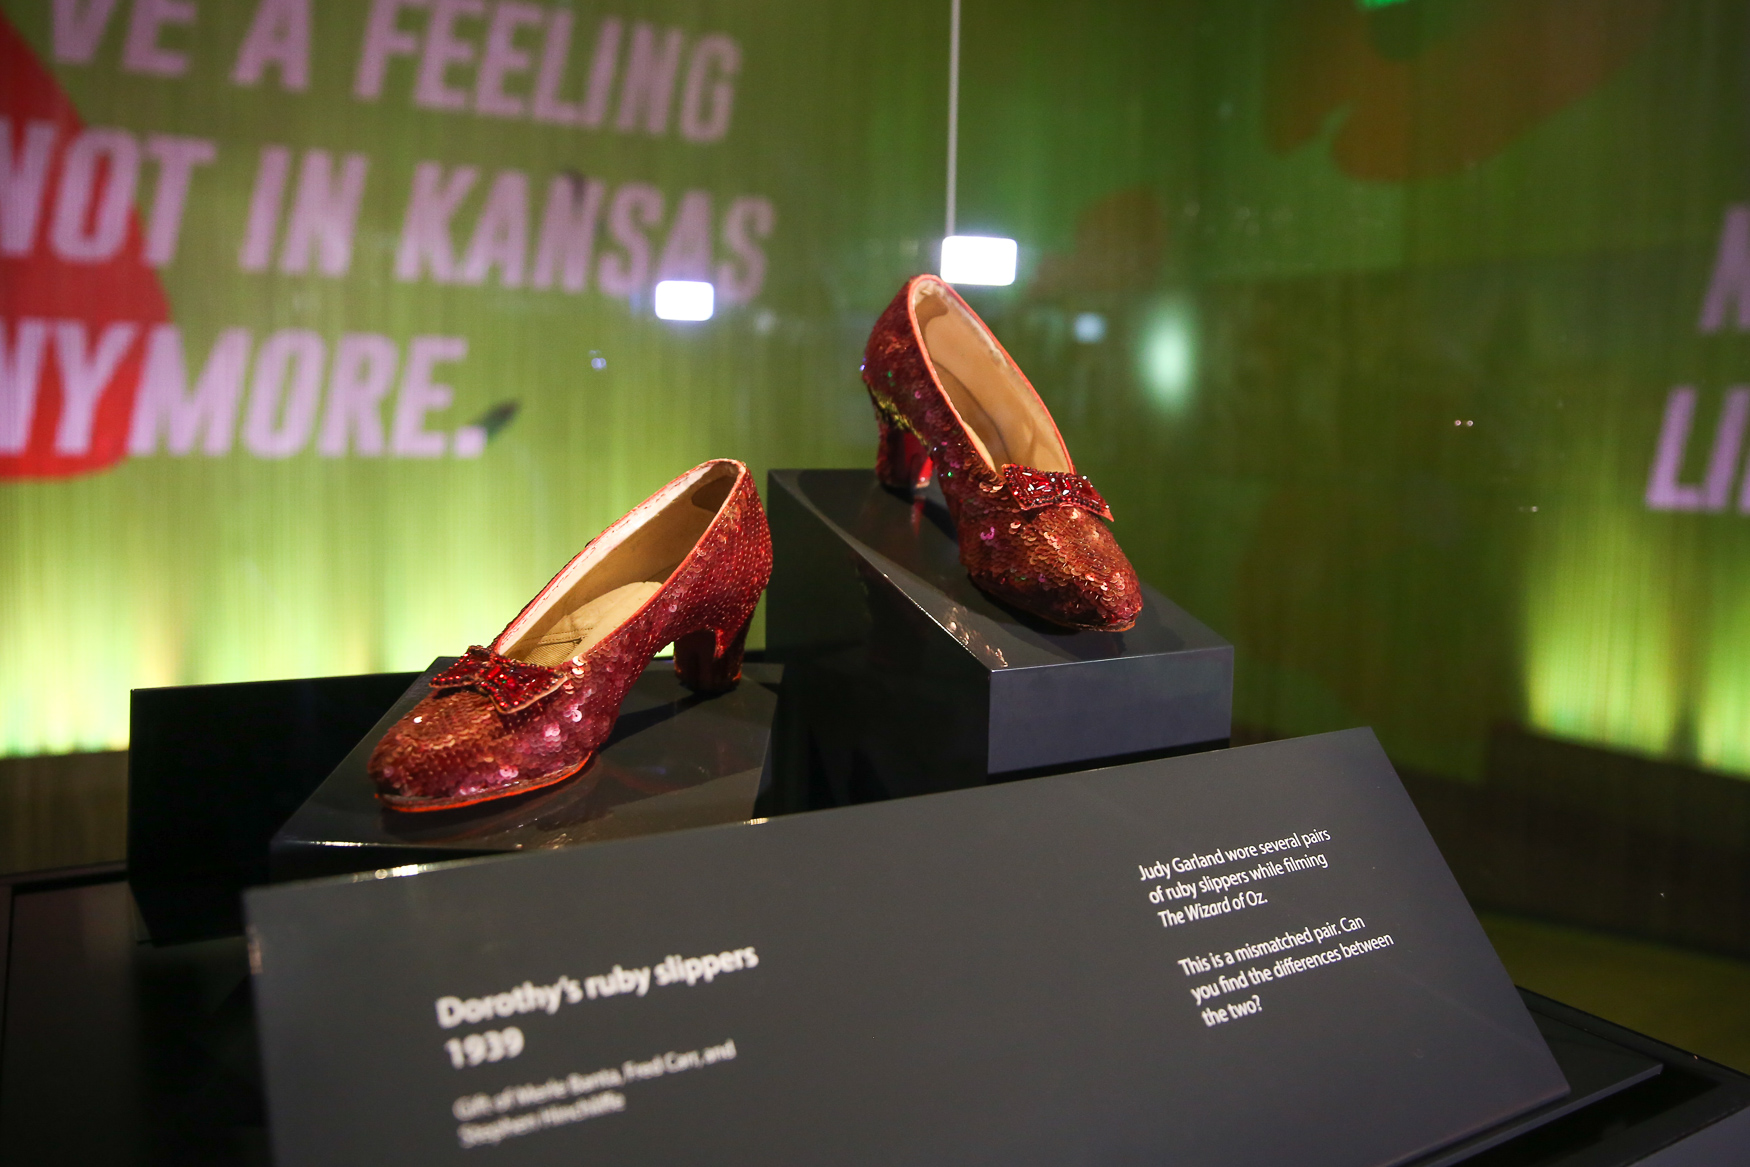 In 'The Wizard of Oz', Dorothy, played by Judy Garland, clicked her heels and wished to go home to Kansas. The National Museum of American History is far from the midwest, but once again it's home for Dorothy's ruby slippers. The slippers were taken off display in April 2017 for badly needed restoration work, but they'll return to the public eye on Friday, October 19. The slippers will be housed in the Ray Dolby Gateway to American Culture exhibit until a new, permanent exhibit is completed in 2020. (Amanda Andrade-Rhoades/DC Refined)